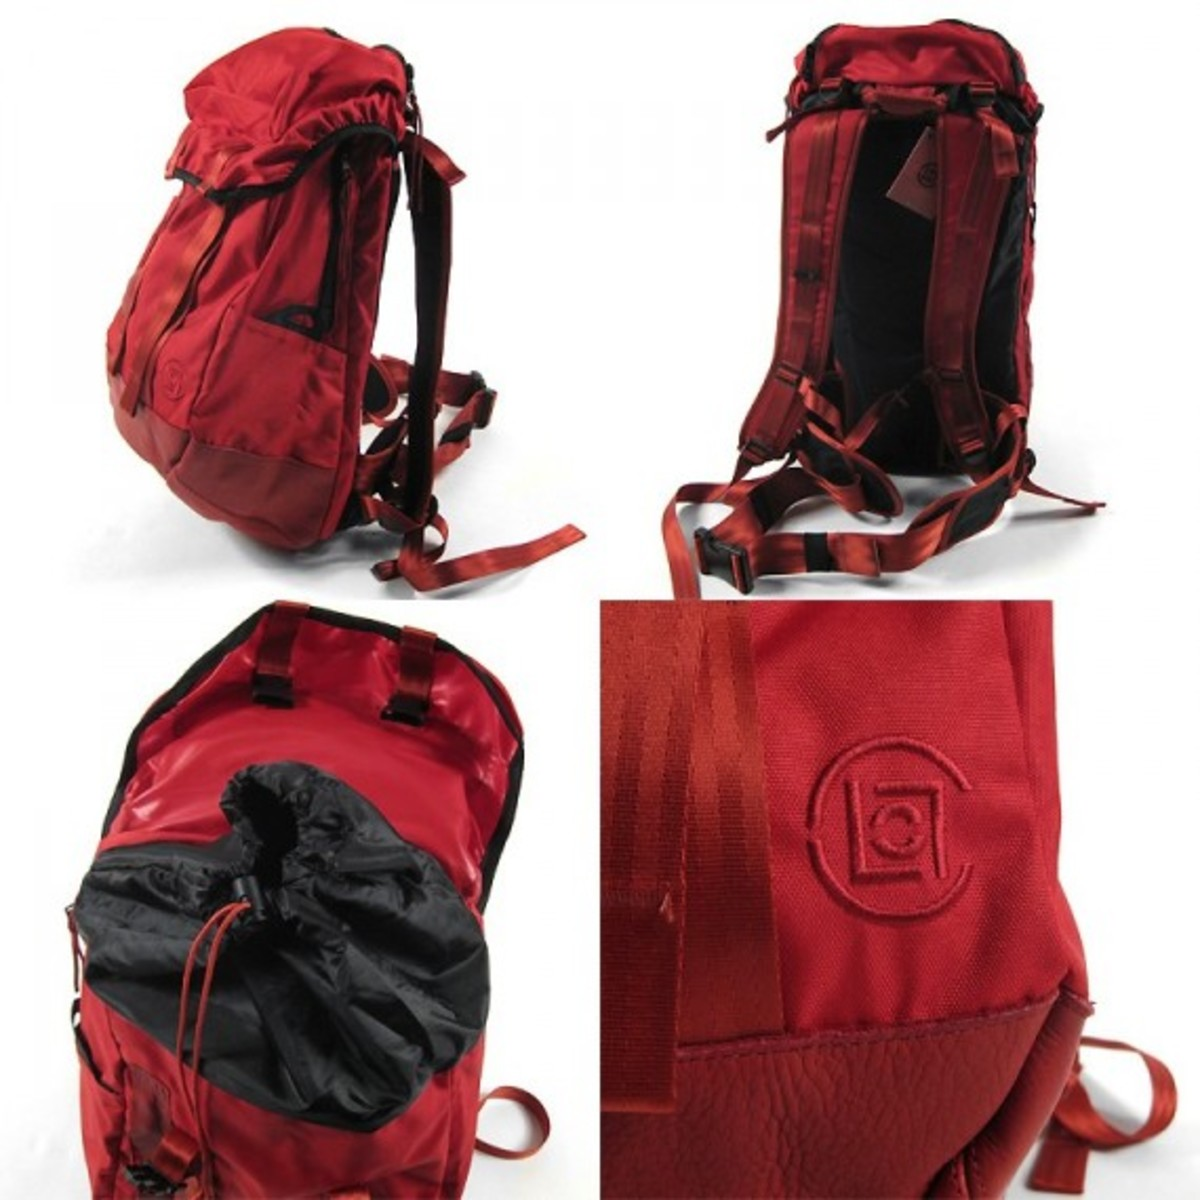 clot-outdoor-backpack-2